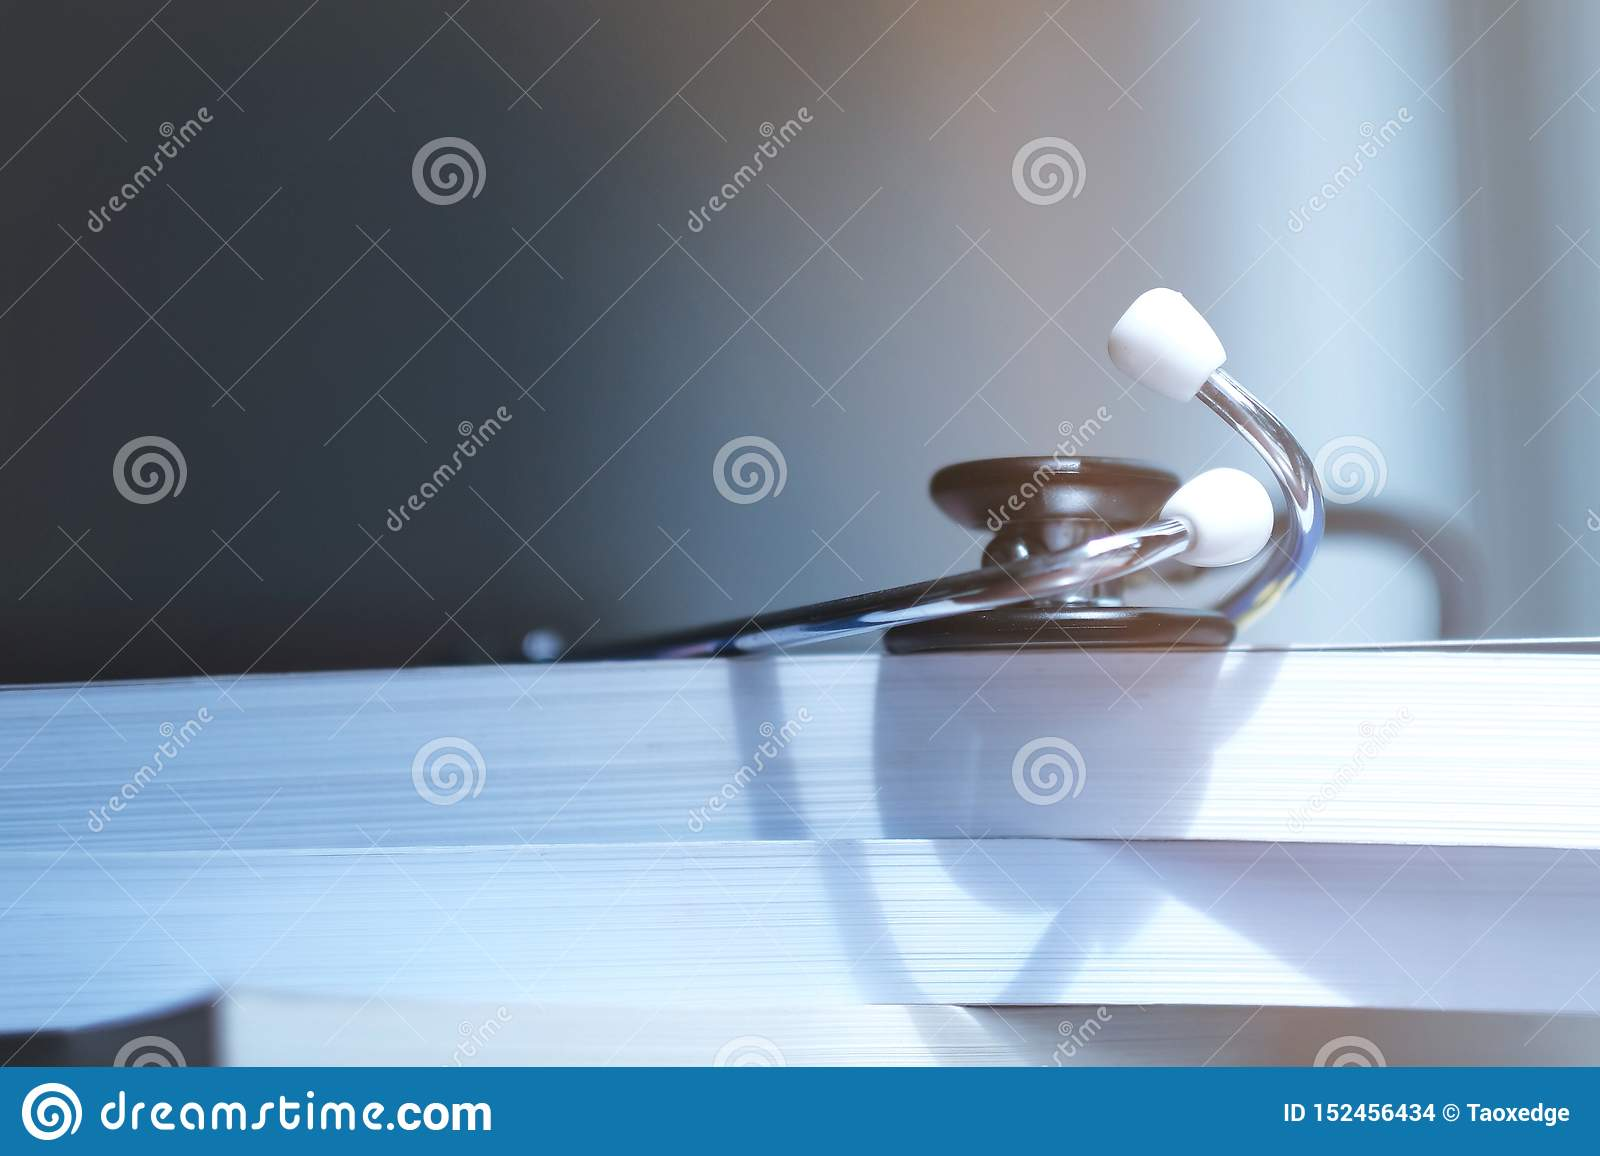 Stethoscope on medical textbooks in library